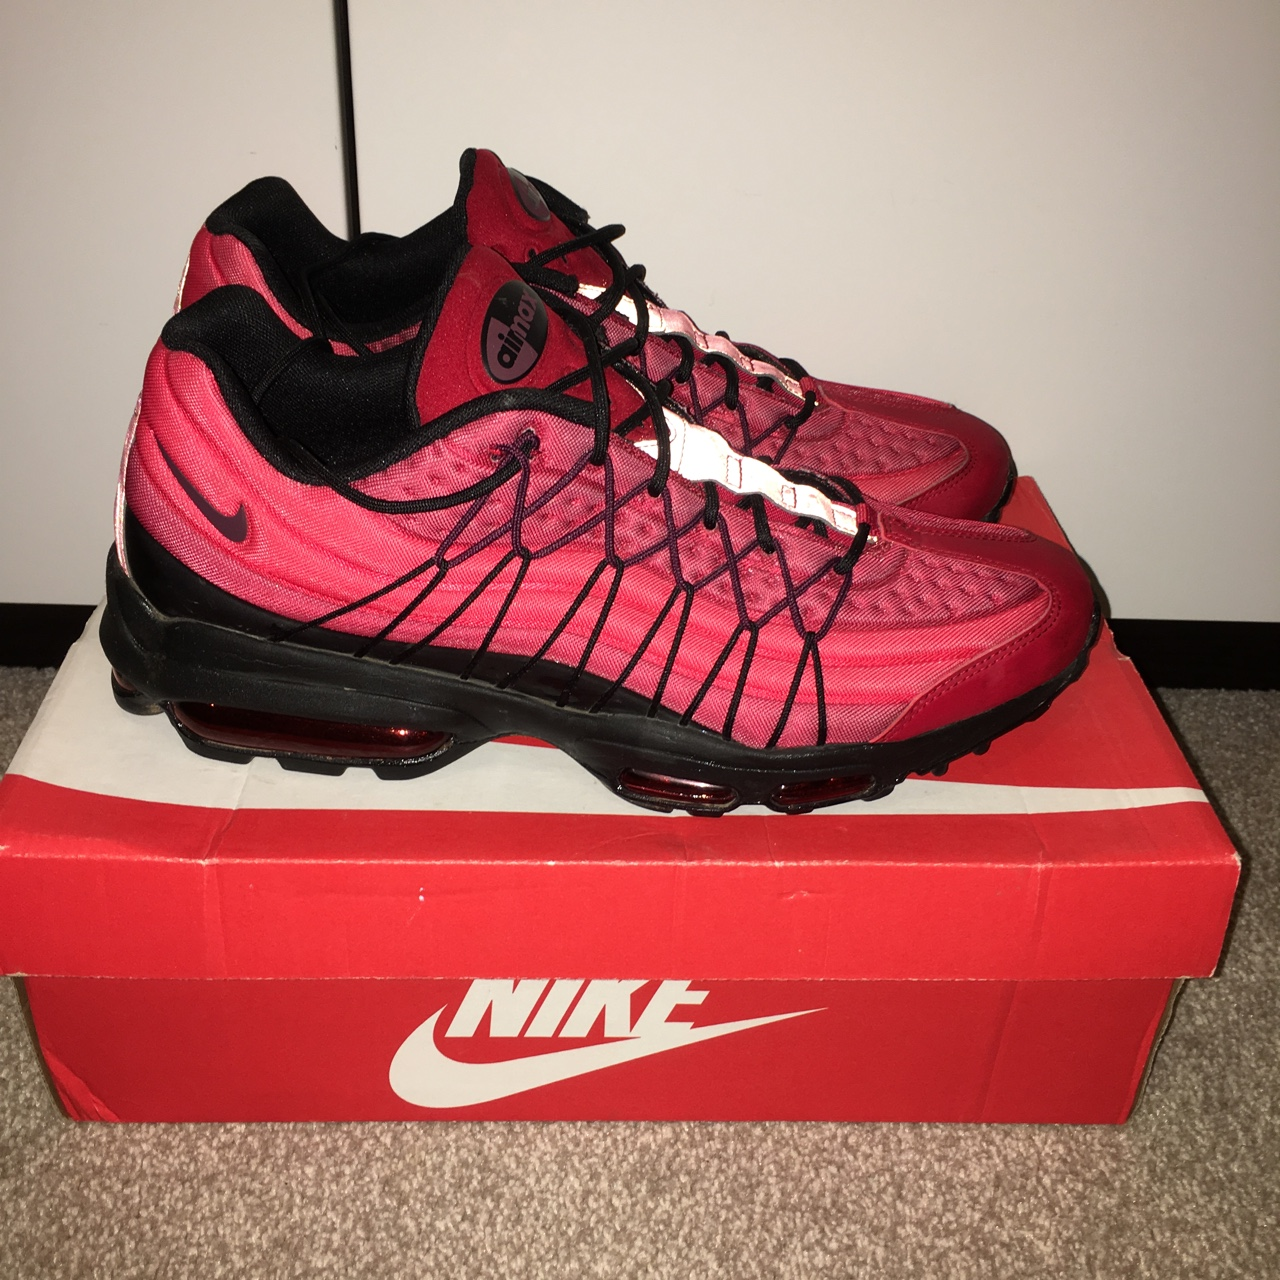 Nike Air Max 95 Ultra SE Gym Red, great